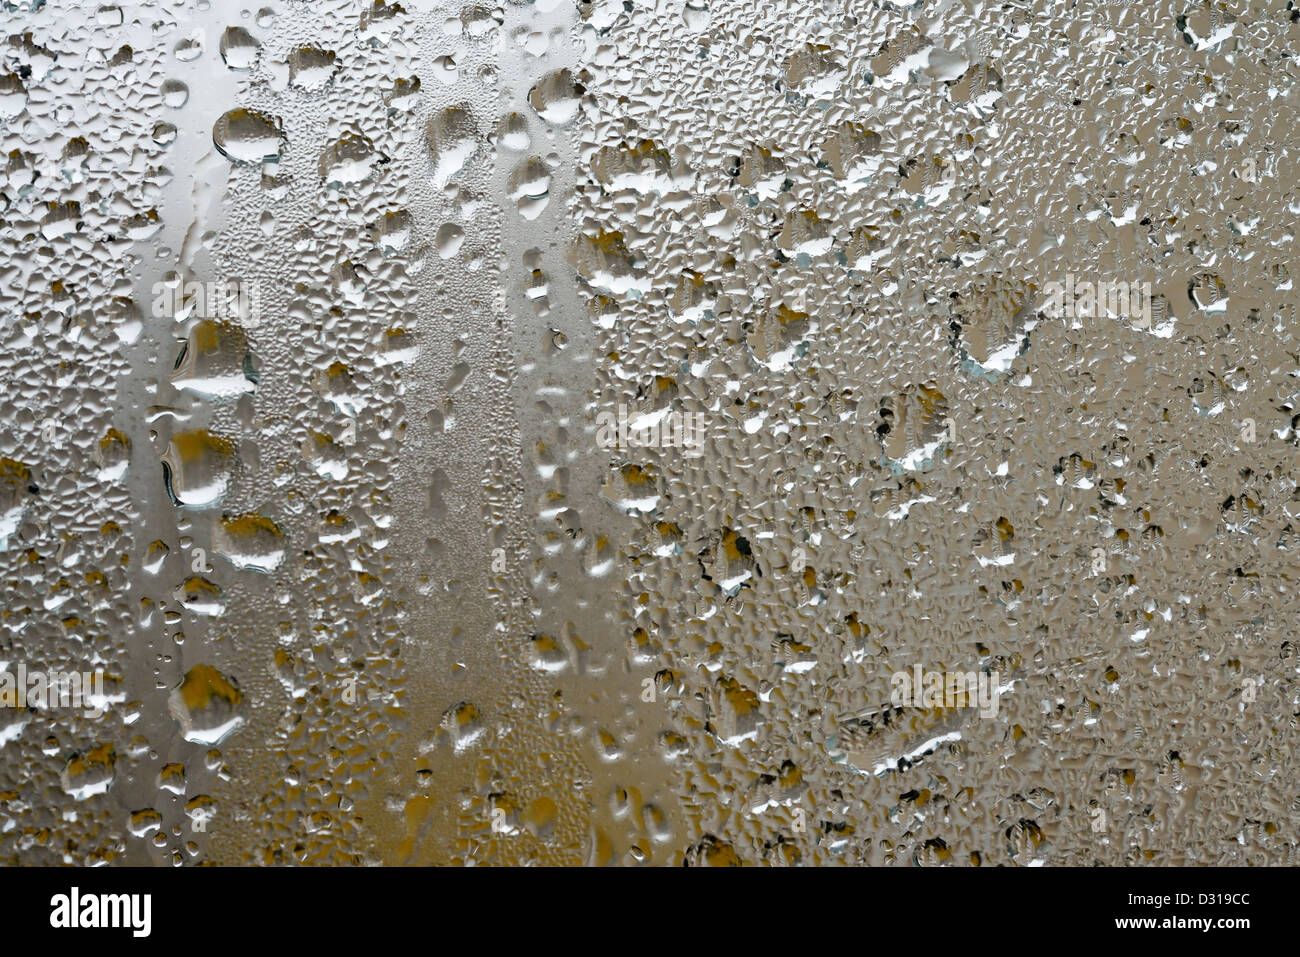 Rain on a window - Stock Image